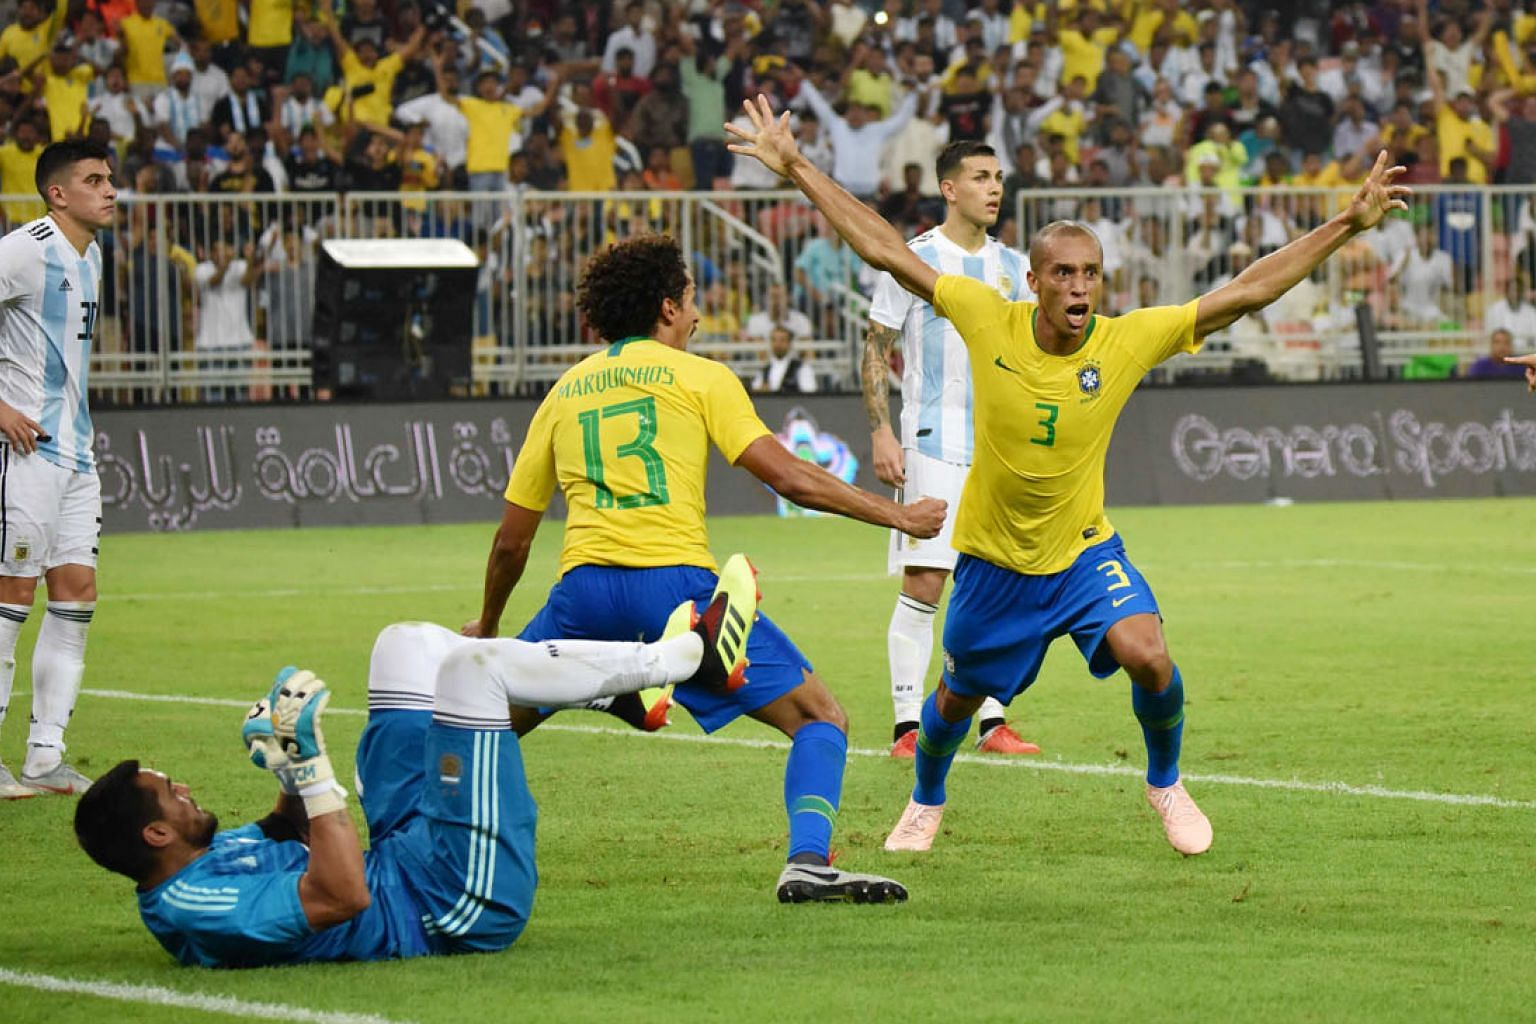 Miranda celebrating after scoring deep in stoppage time against Argentina in a friendly in Jeddah on Tuesday. The veteran defender believes he is still in good shape and wants to carry on playing for Brazil.